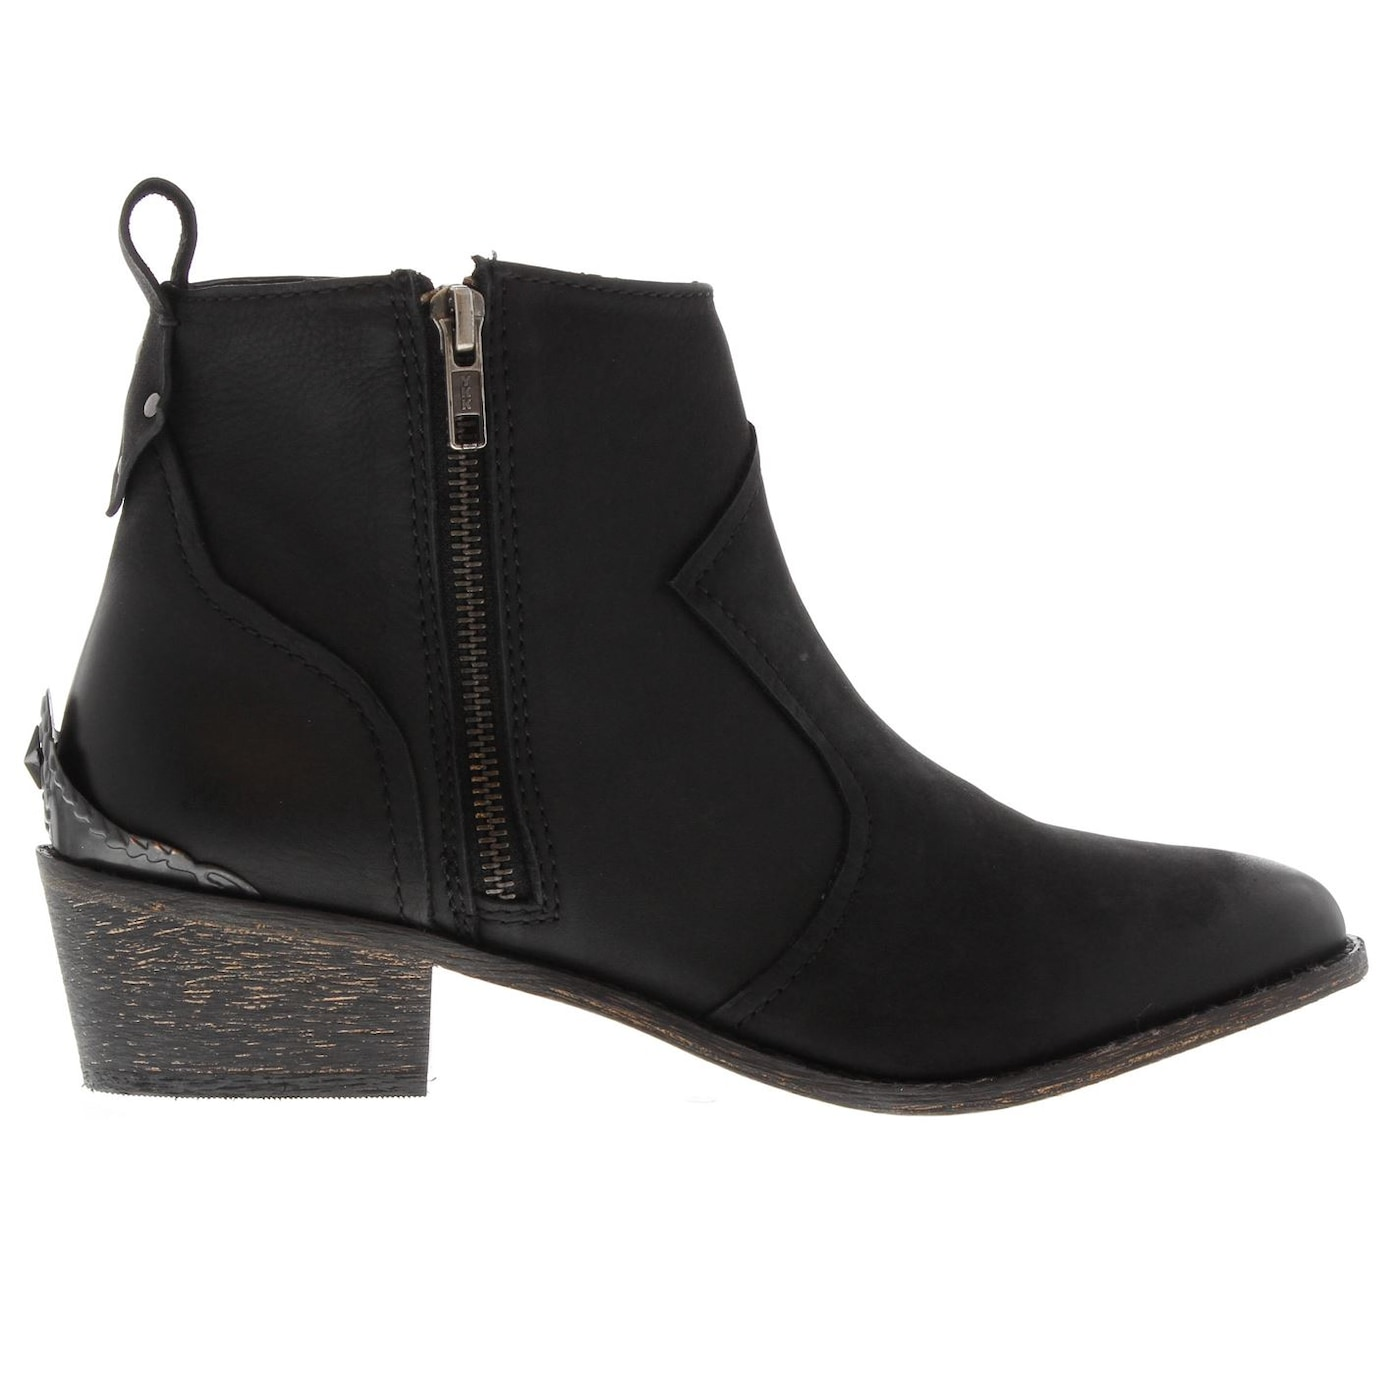 Attribute Gangway Ankle Boots